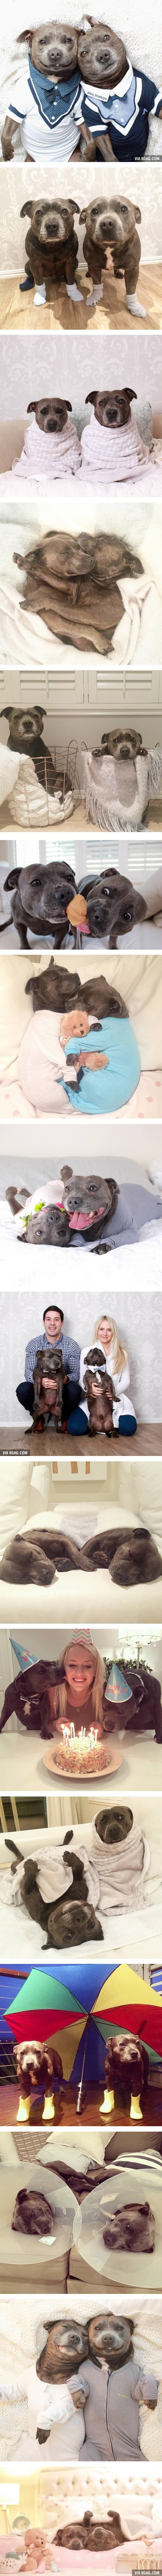 The Most Adorable Pit Bull Brothers Ever